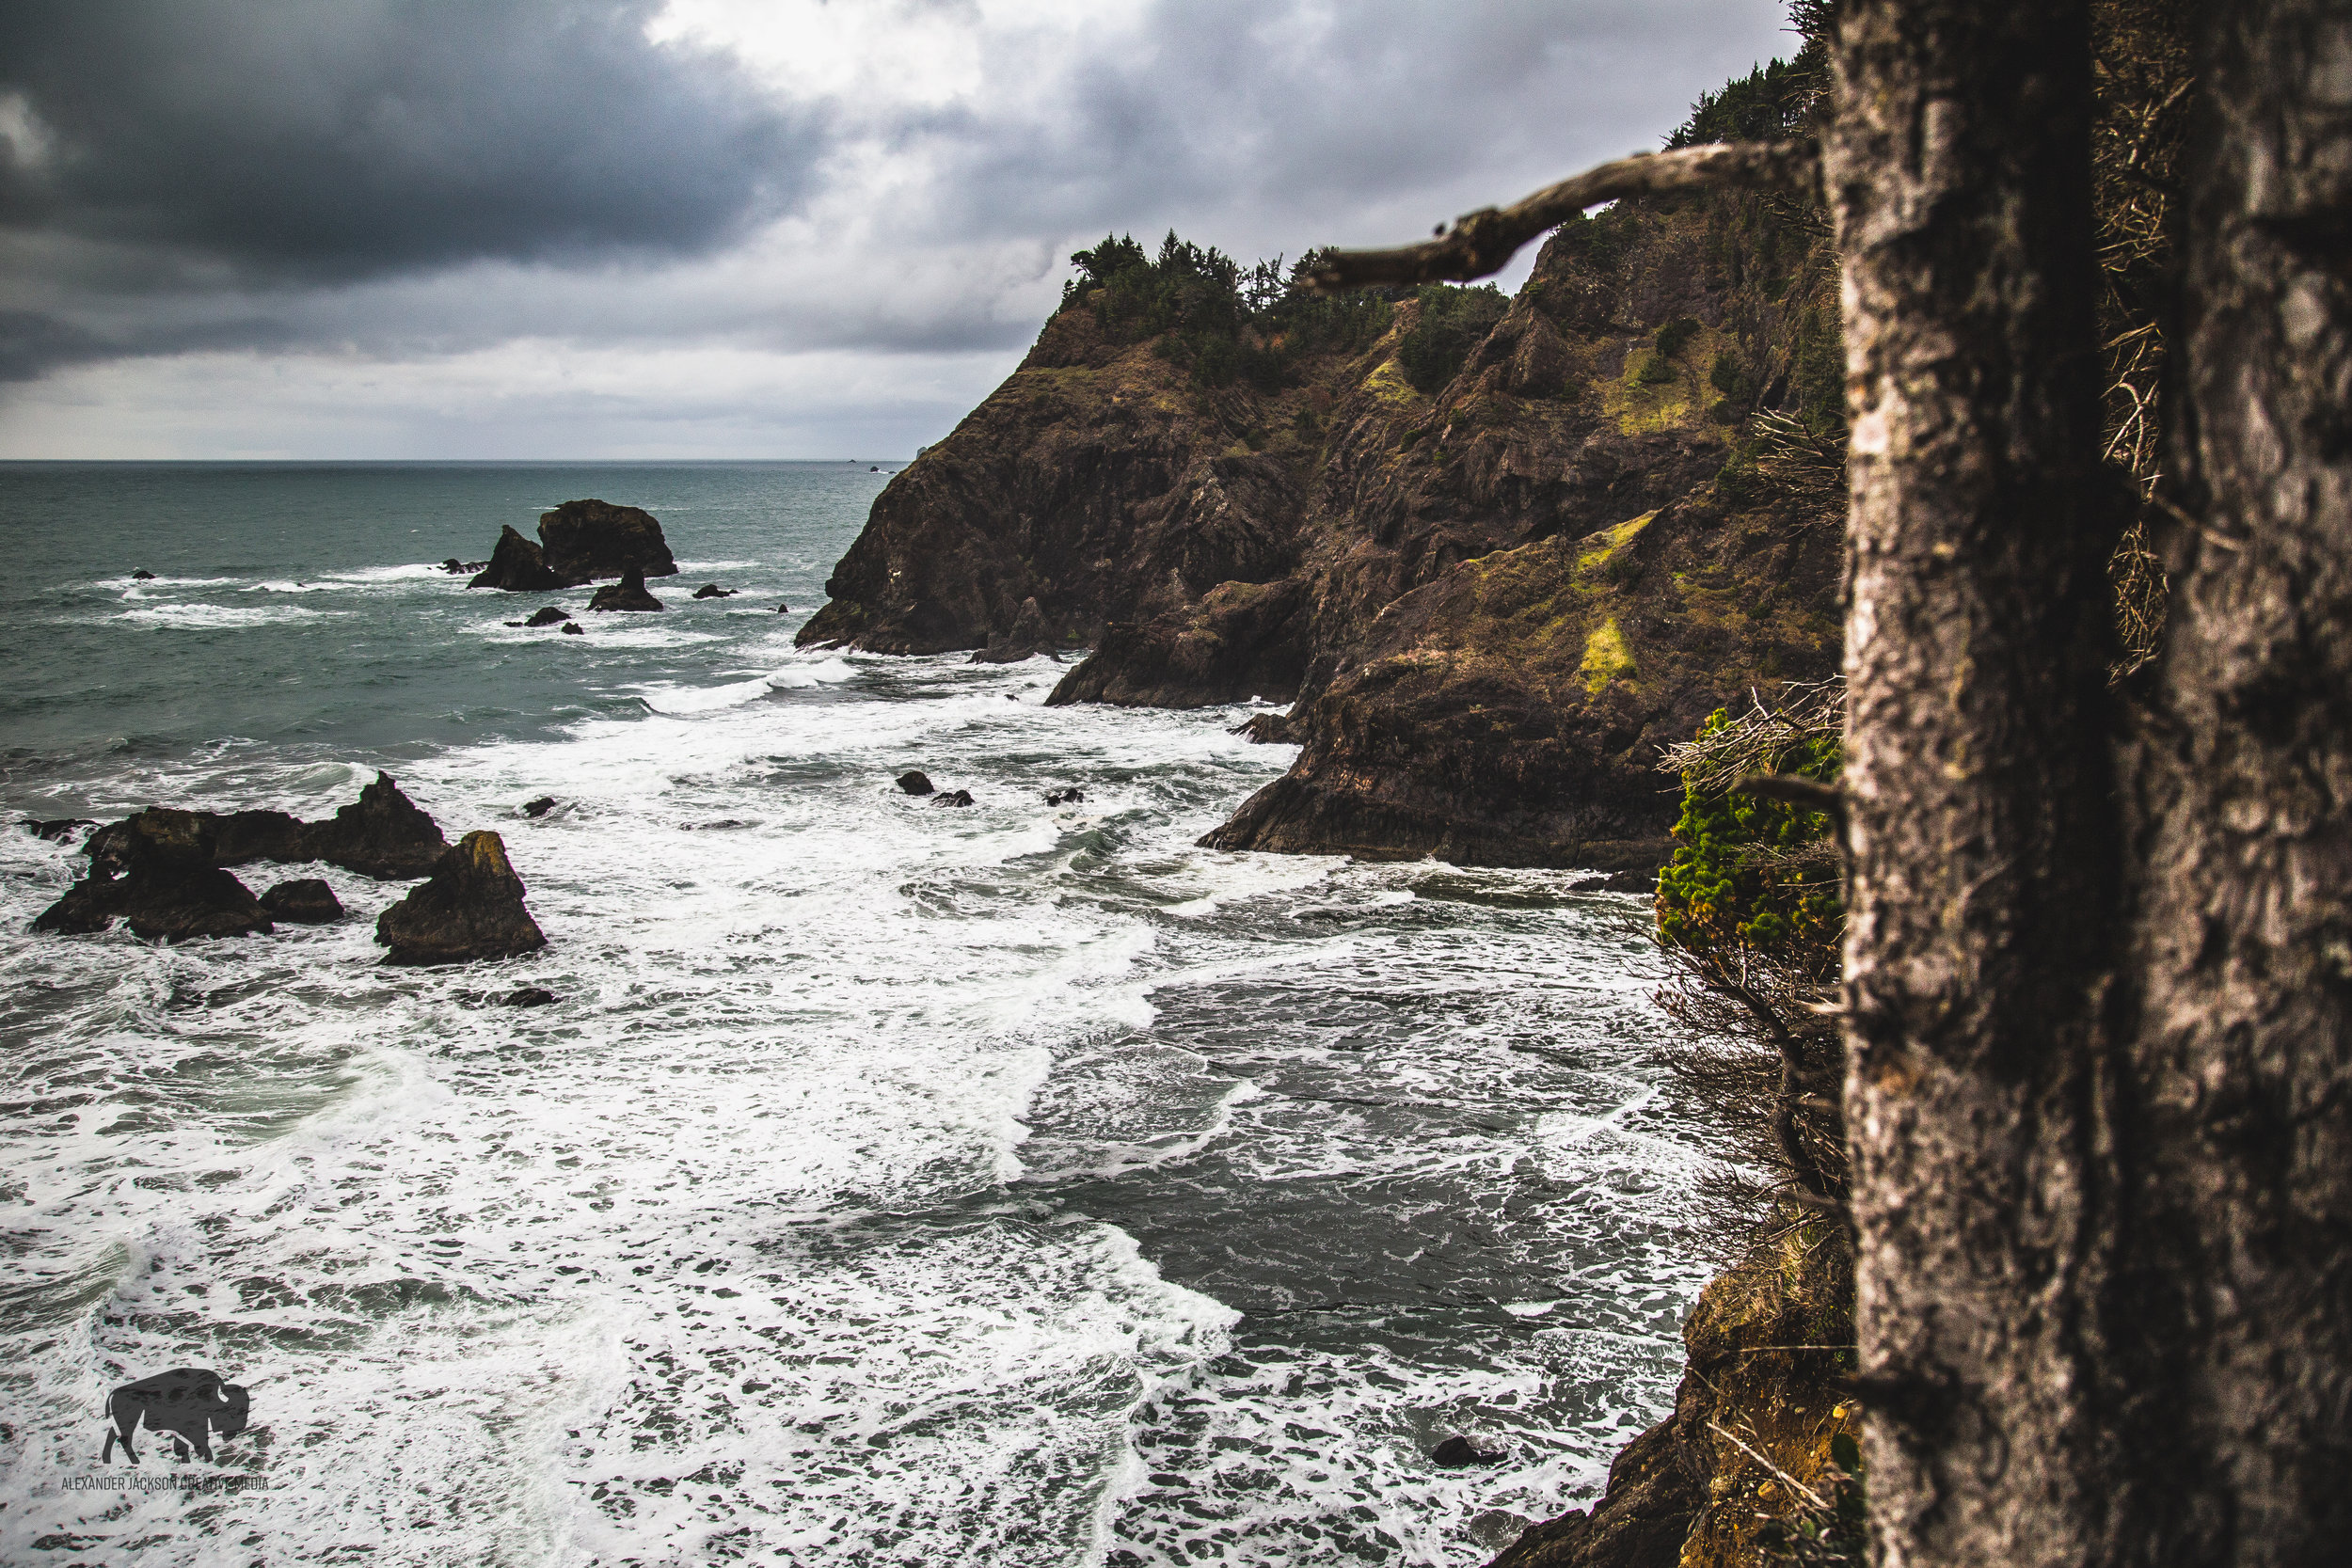 Not surprisingly the Oregon coast has been placed on my 'return to' list. I'll probably go back during the summer though, it was a little too cold and windy for my taste on this particular trip.